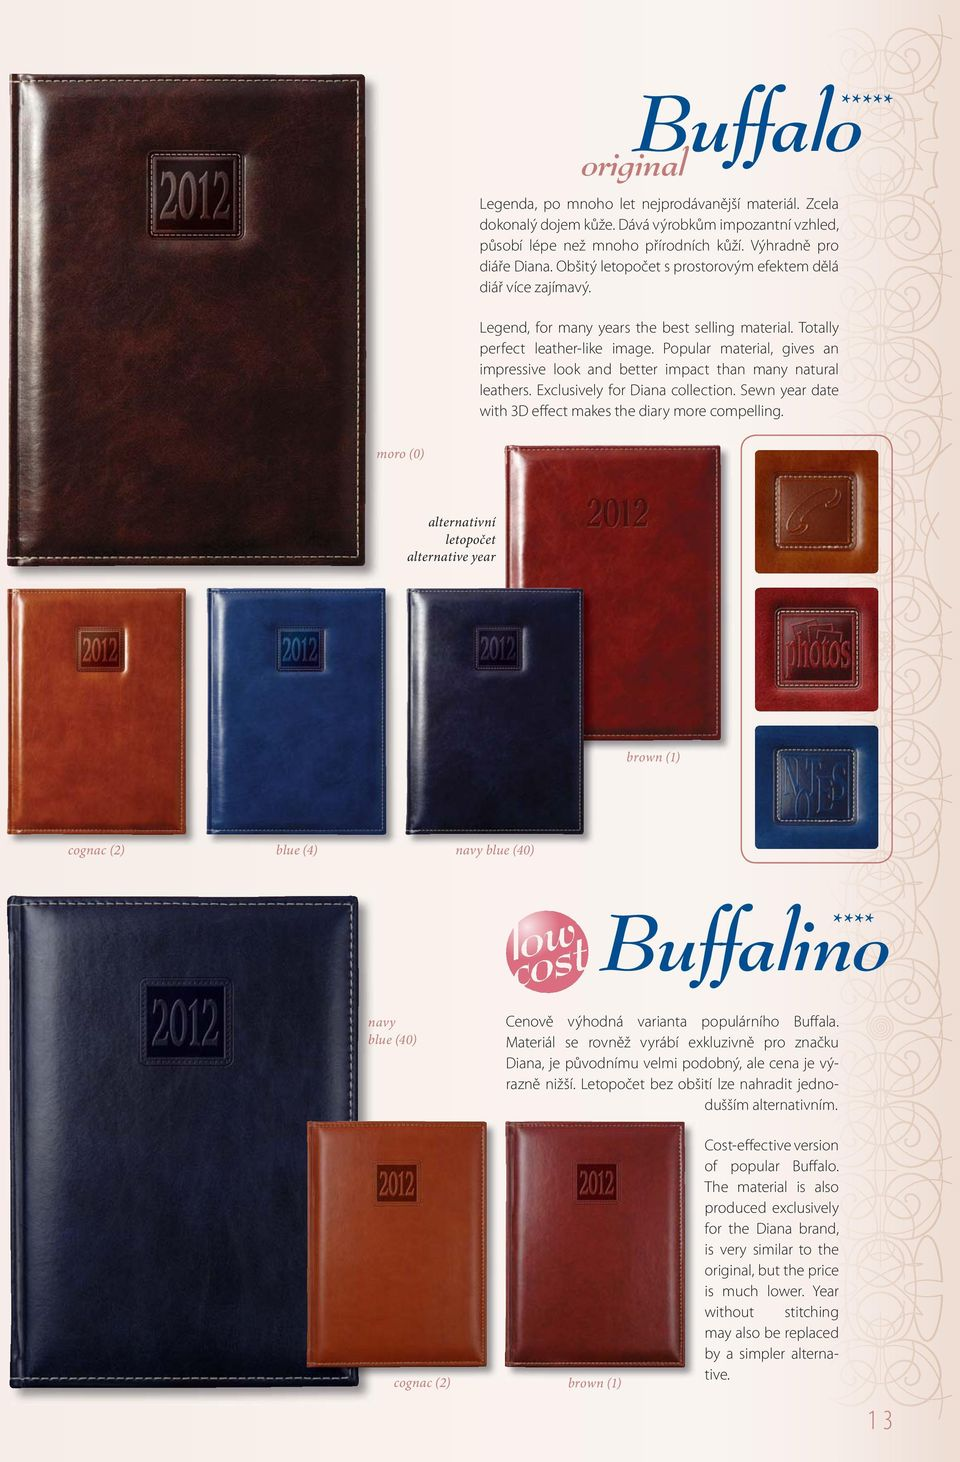 Popular material, gives an impressive look and better impact than many natural s. Exclusively for Diana collection. Sewn year date with 3D effect makes the diary more compelling.